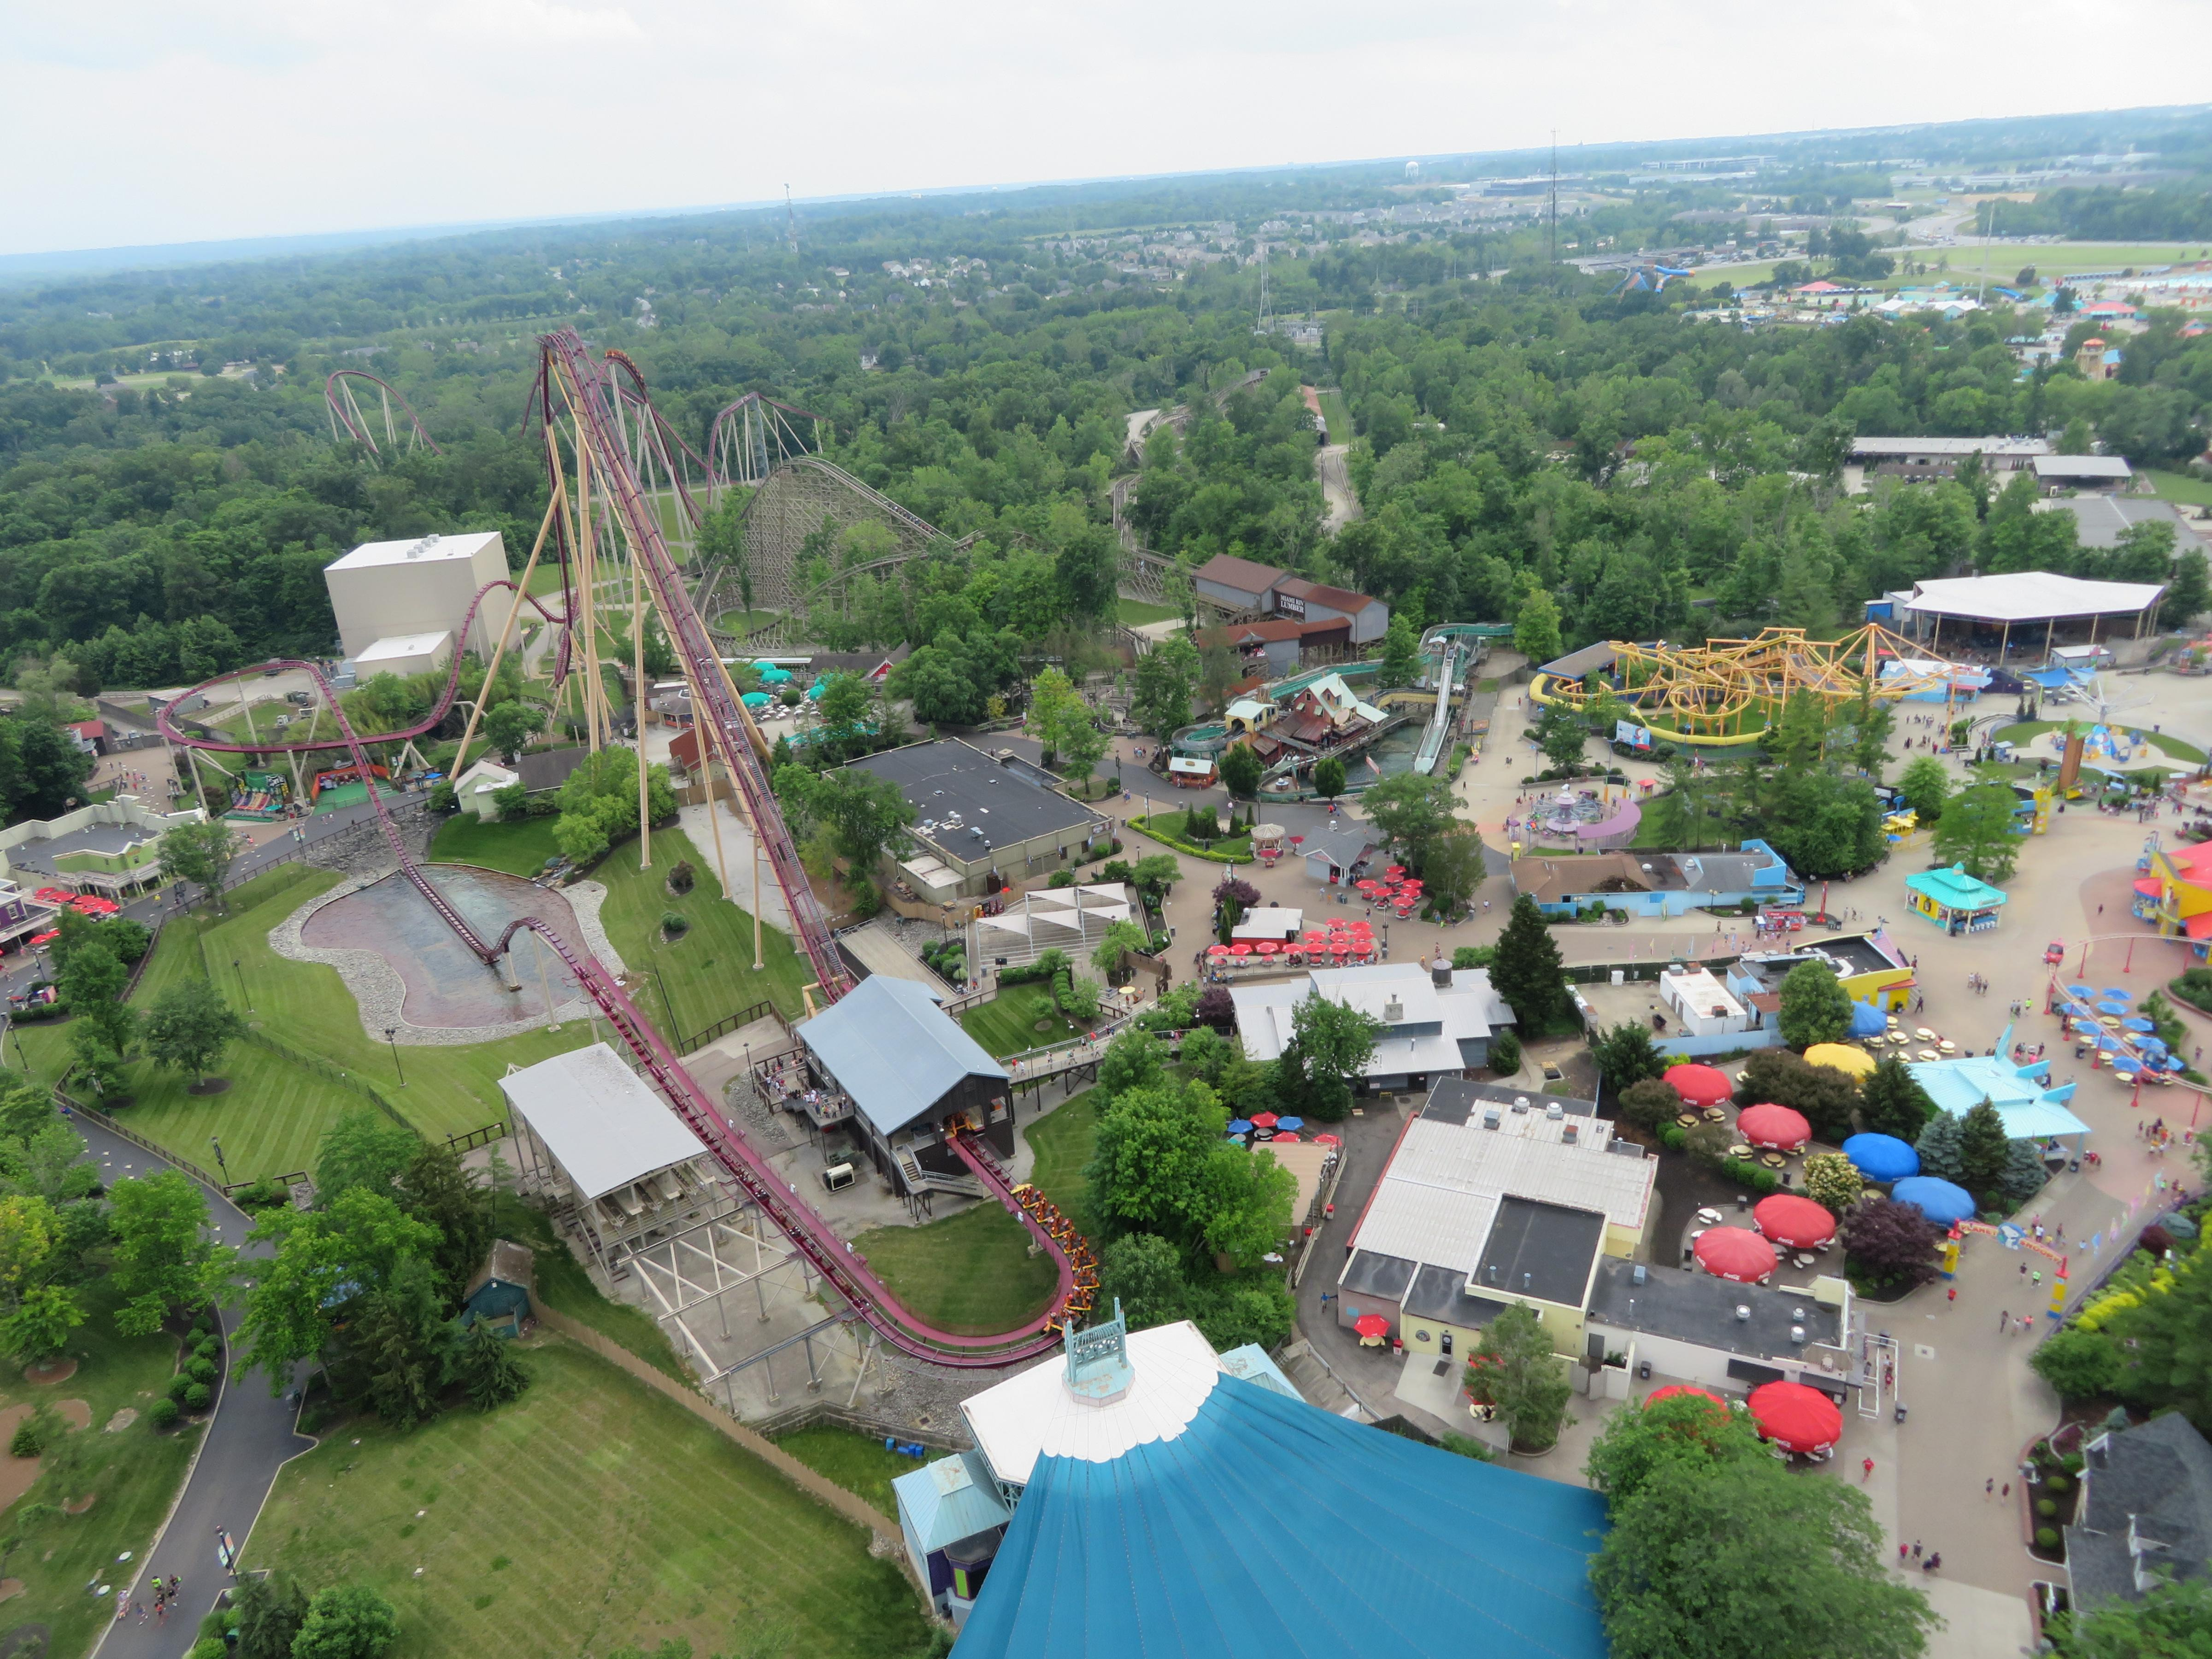 Kings Island - 5th June 2019